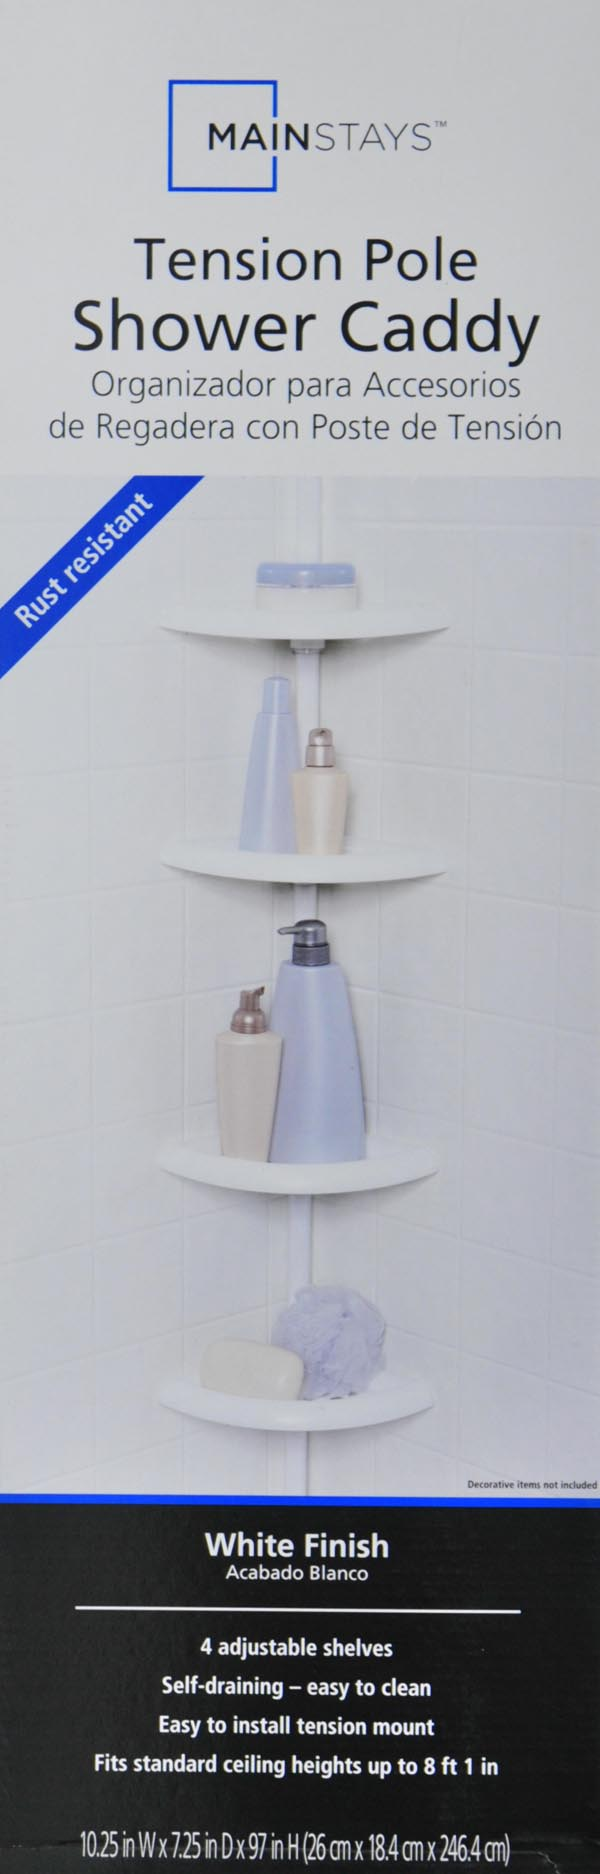 Mainstays 4Tier Tub and Shower Tension Pole Caddy White Walmartcom